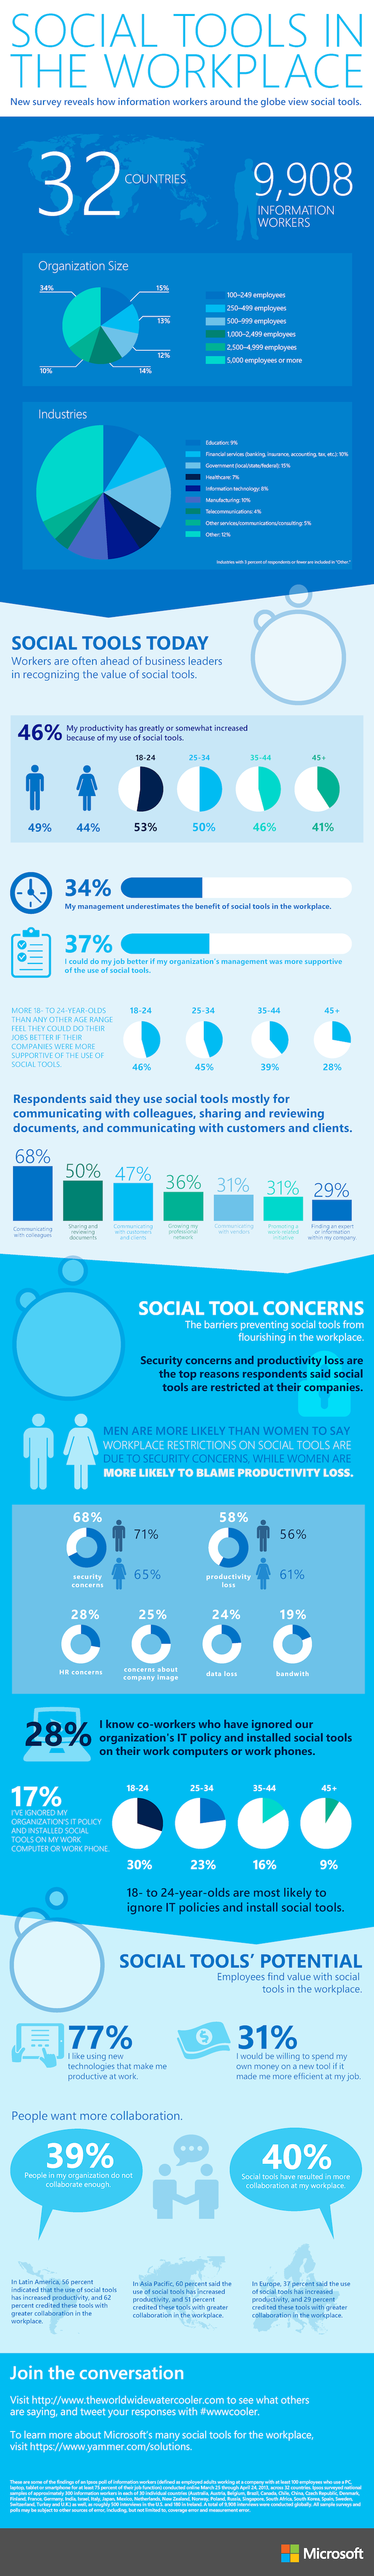 A global Microsoft survey on Social Tools in the Workplace